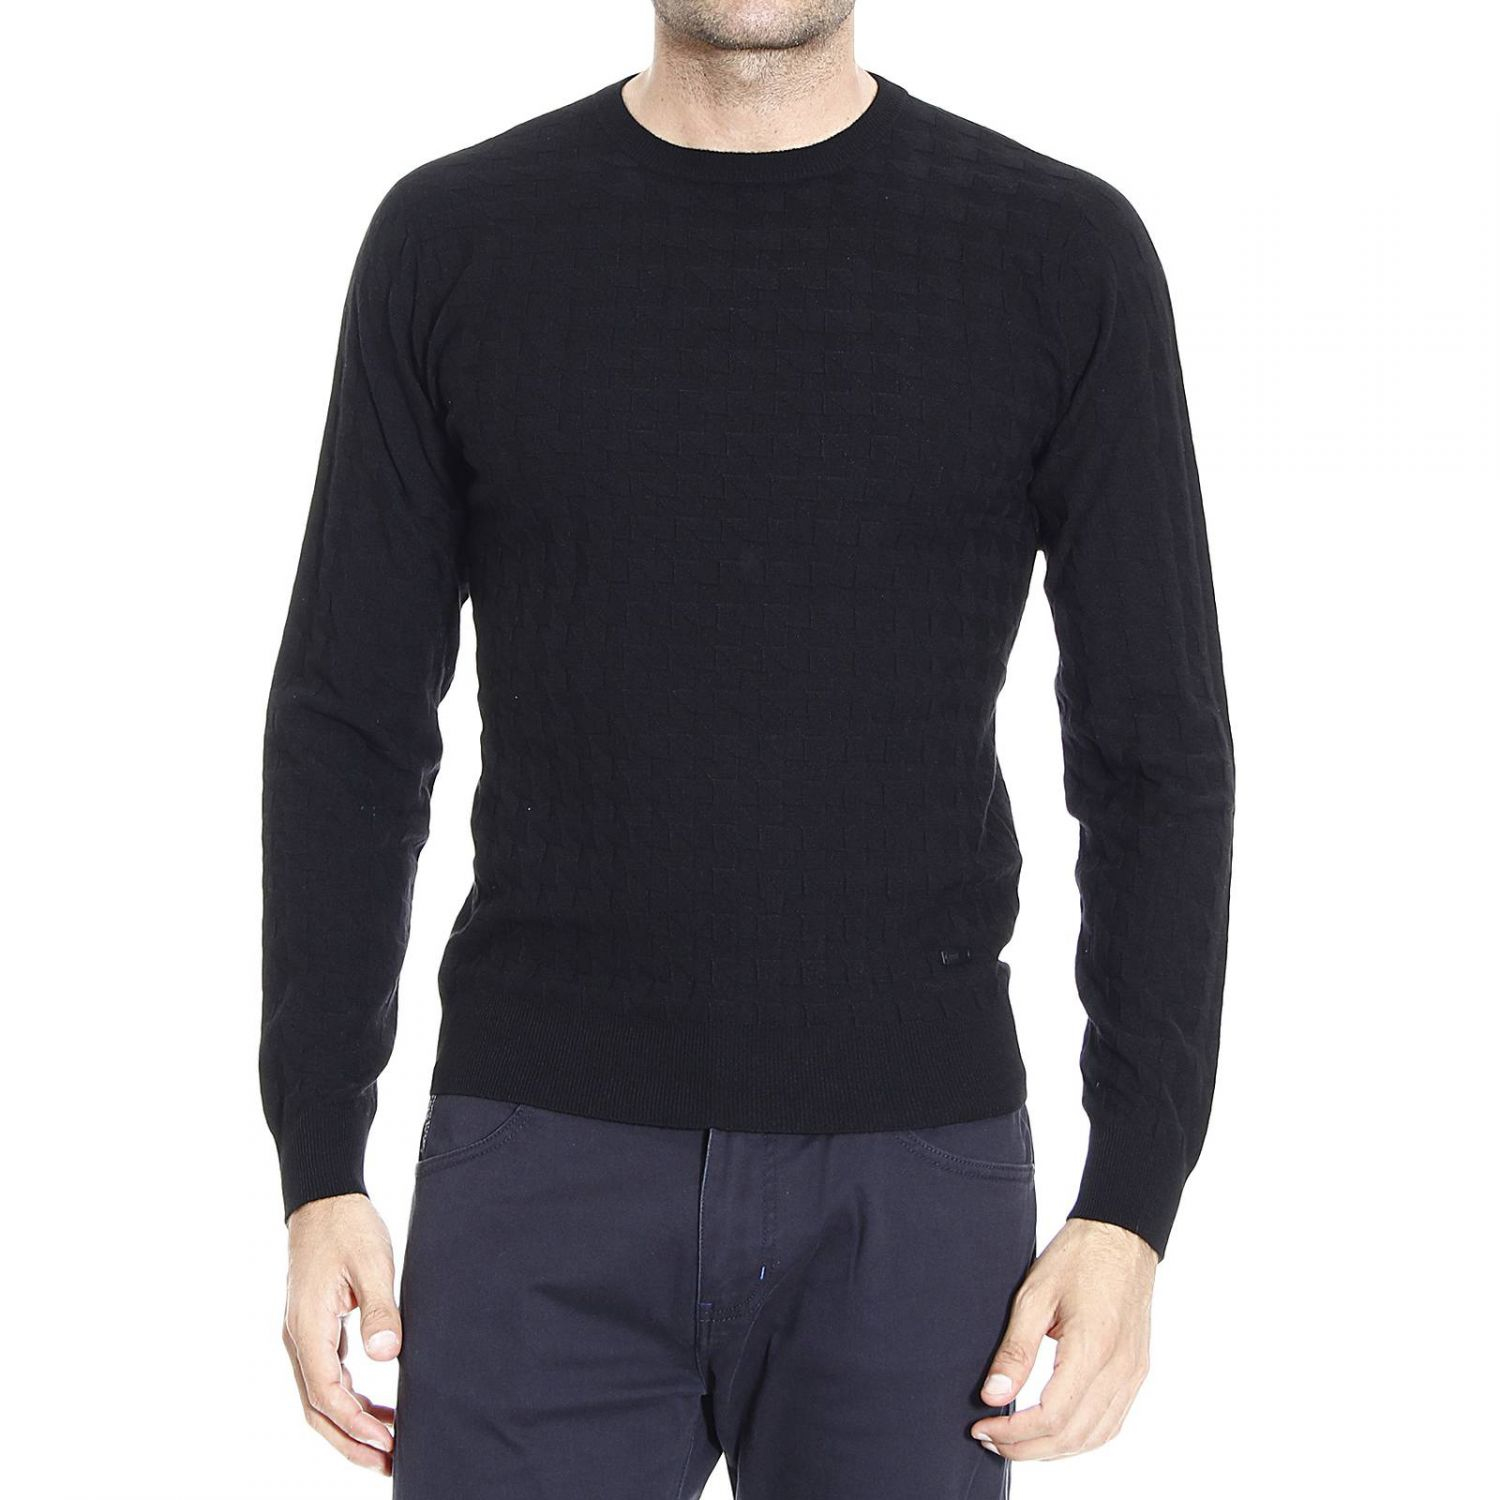 Find great deals on eBay for boy black sweater. Shop with confidence.